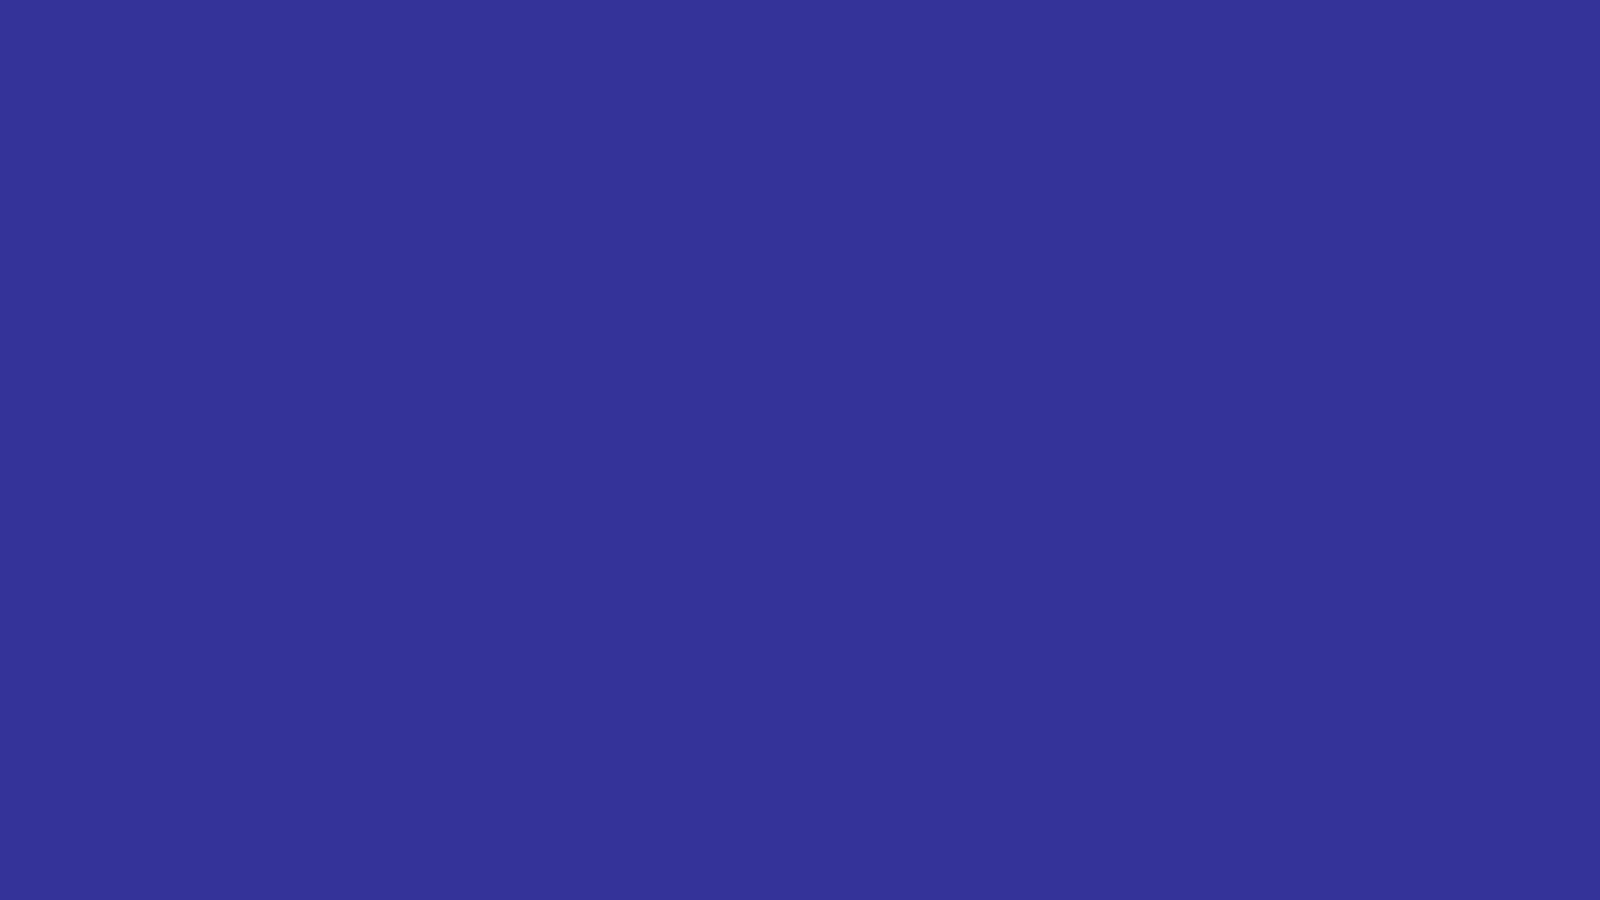 1600x900 Blue Pigment Solid Color Background